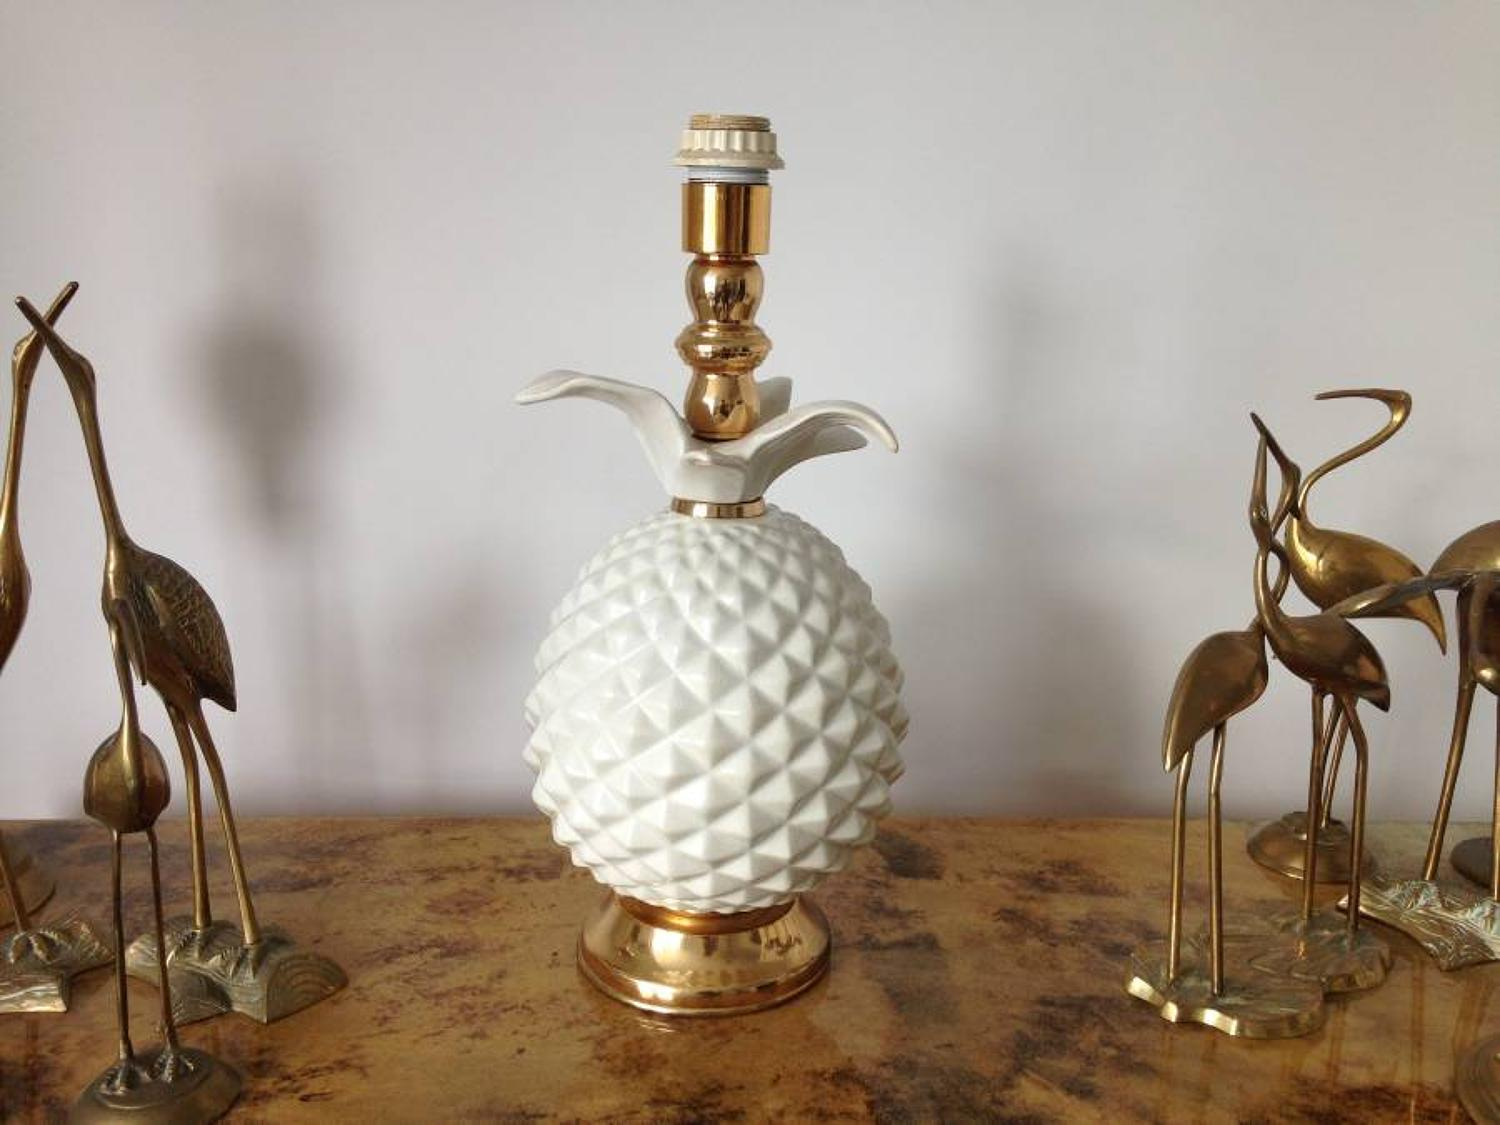 Italian ceramic pineapple and brass table lamp